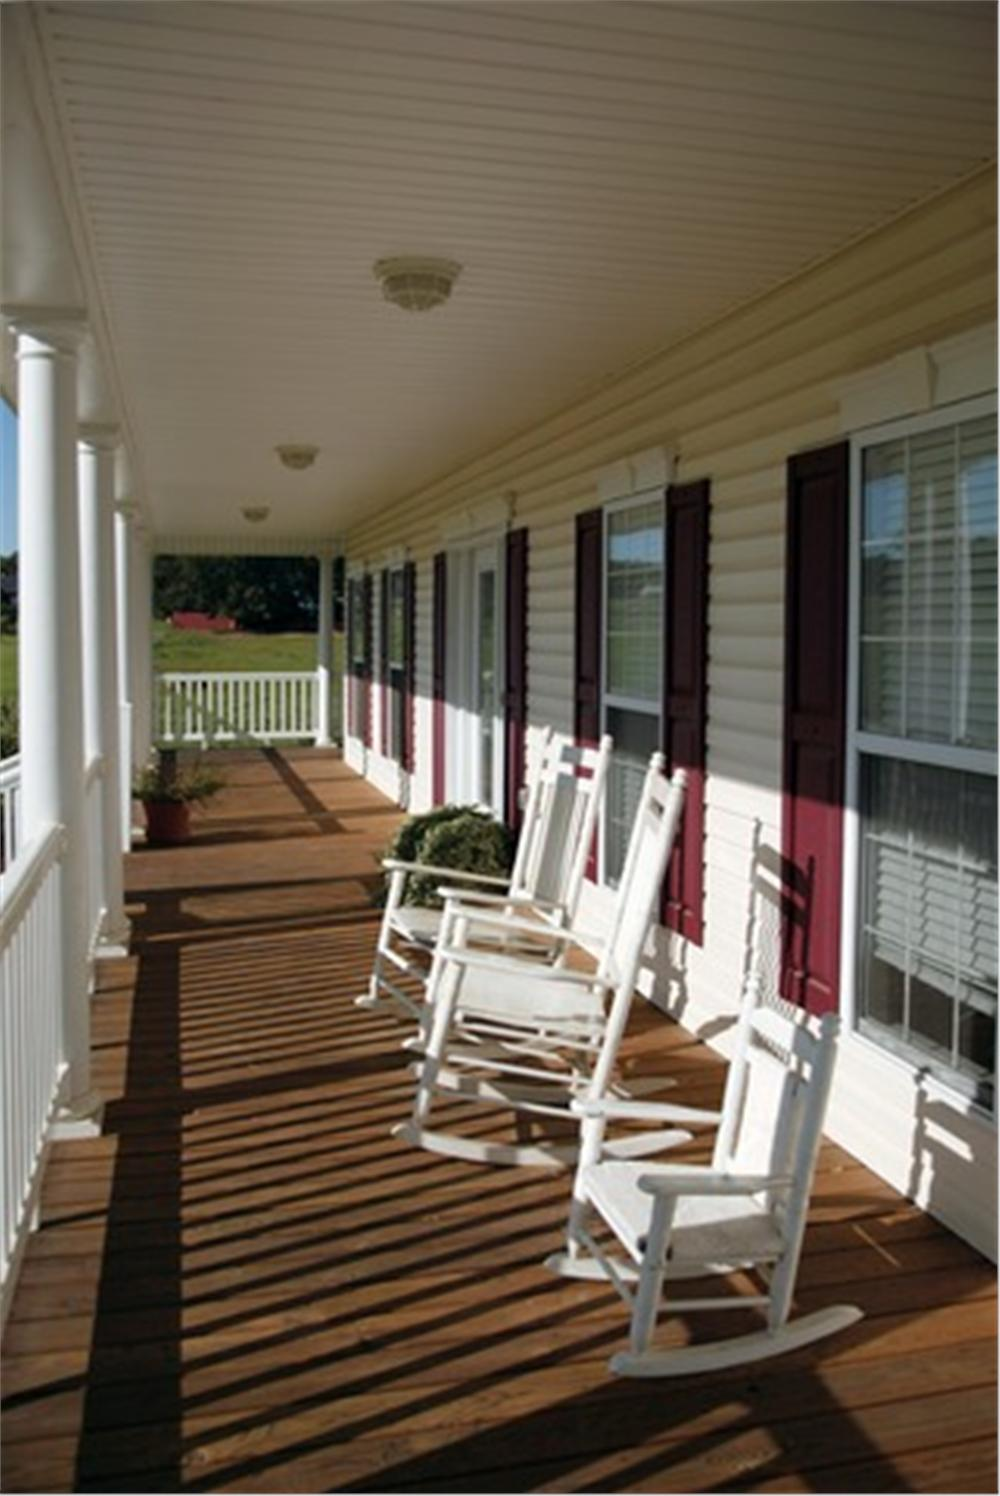 109-1093 porch view